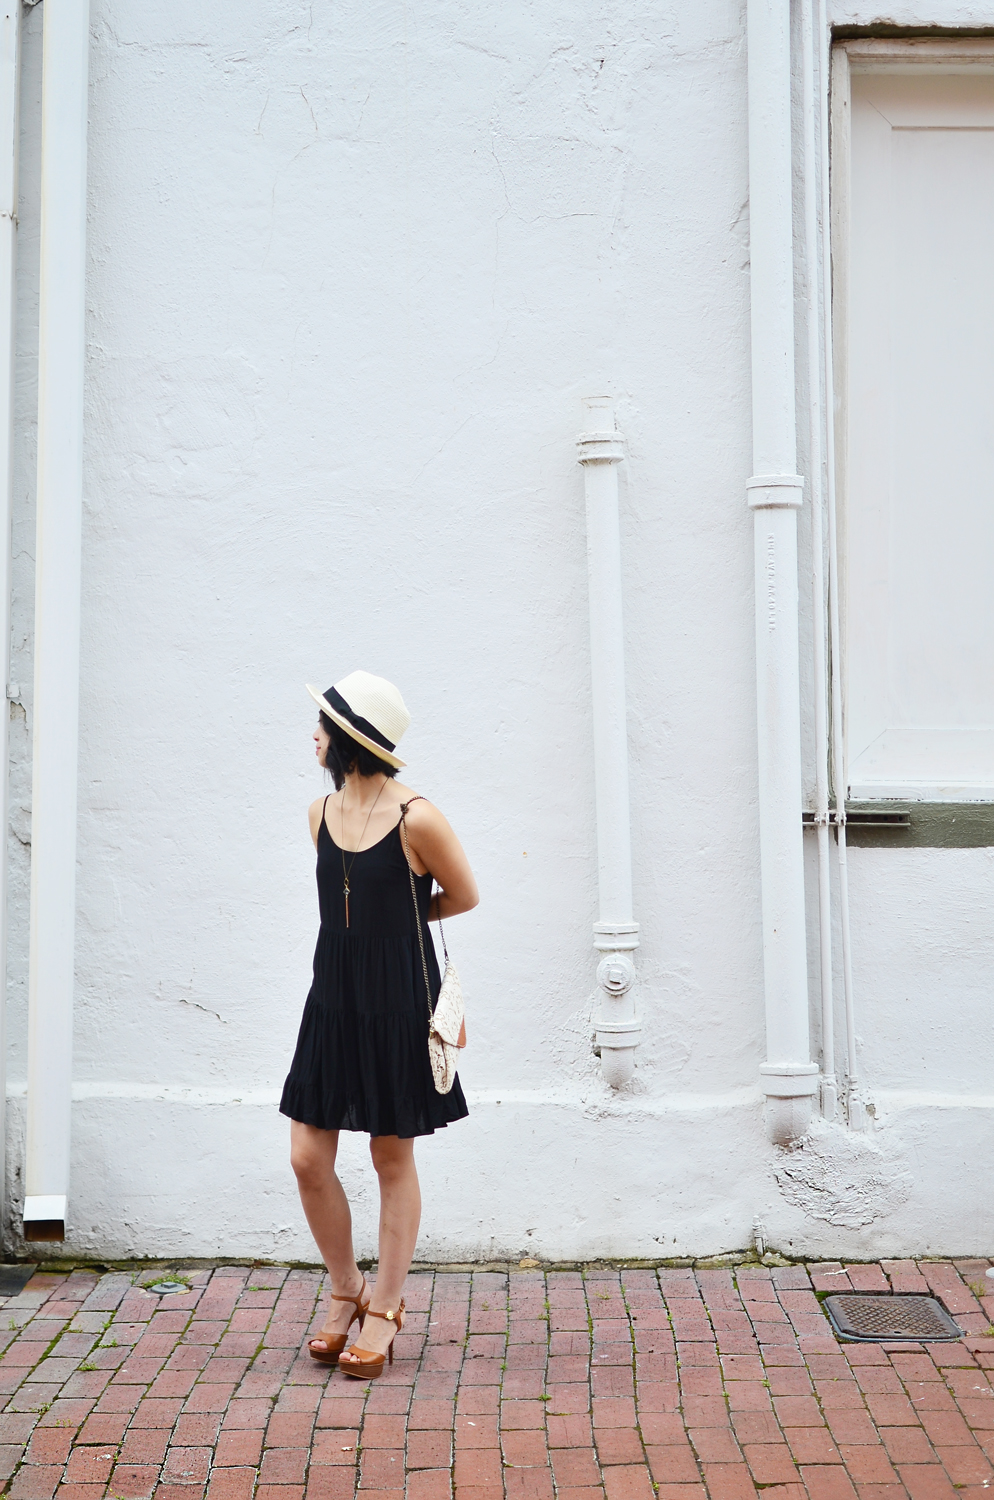 Talula Keisei dress, Talula Pelham hat, Crafts and Love Sam necklace, Nila Anthony clutch, Michael Kors sandals